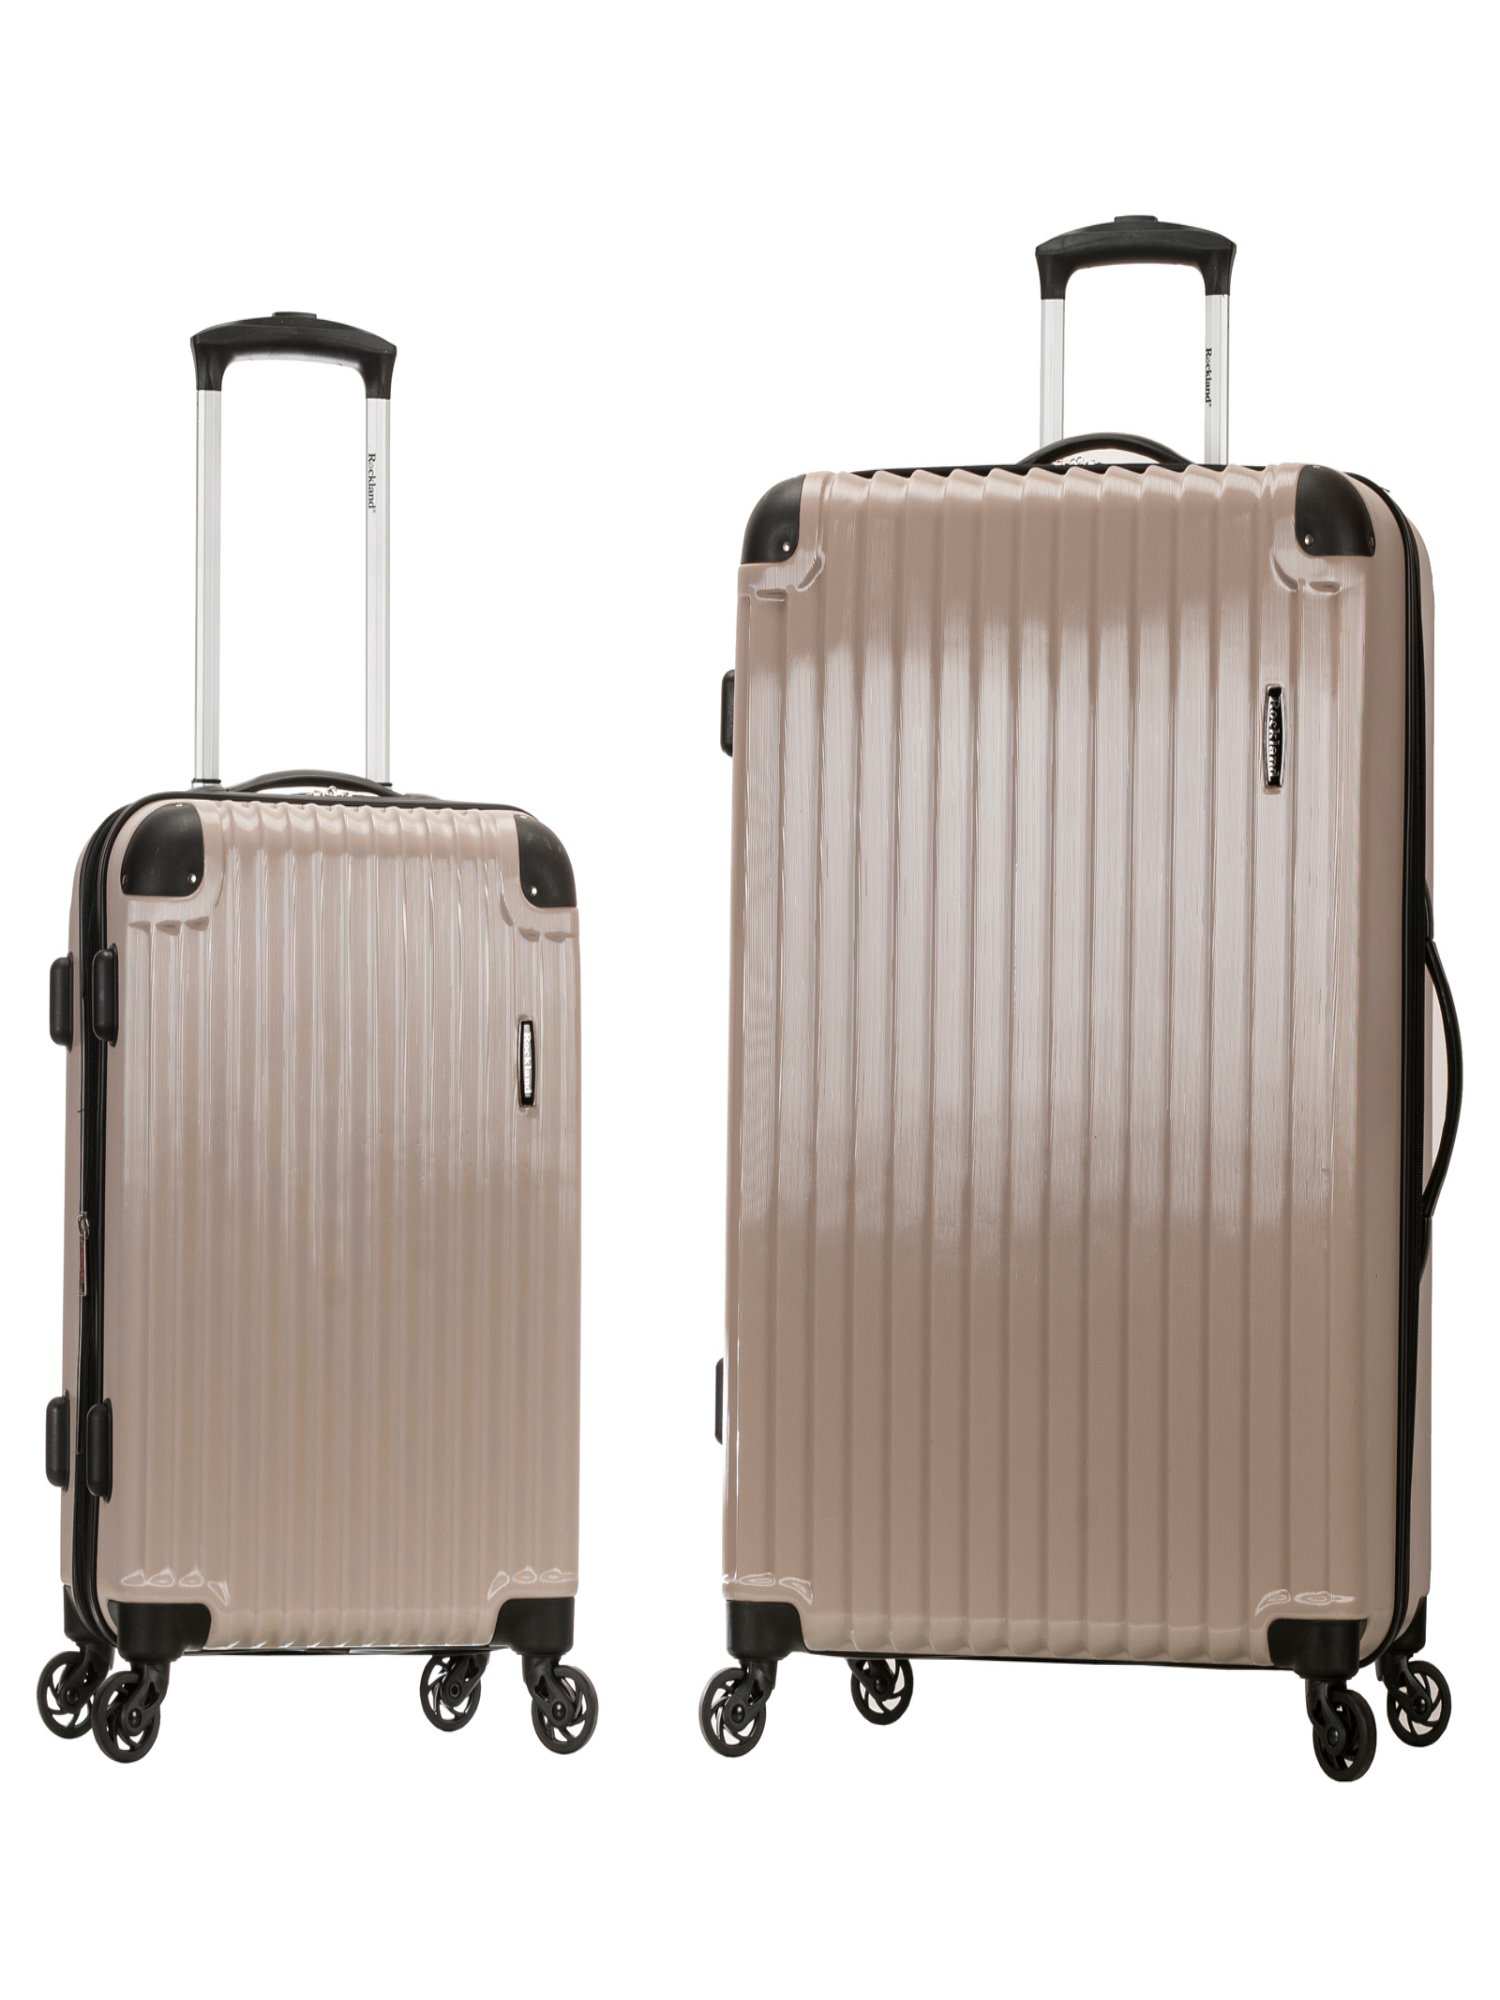 Rockland Luggage Santorini 2 Piece Expandable Hard Sided